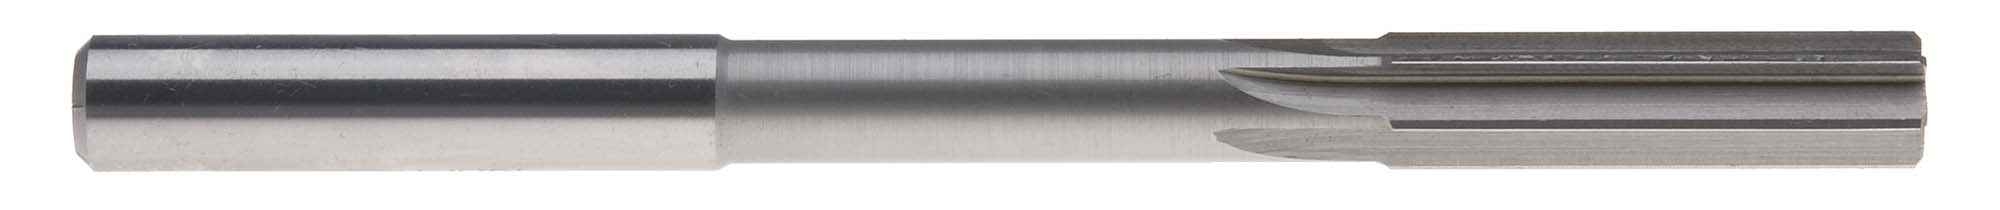 3.5mm Metric Chucking Reamer, High Speed Steel